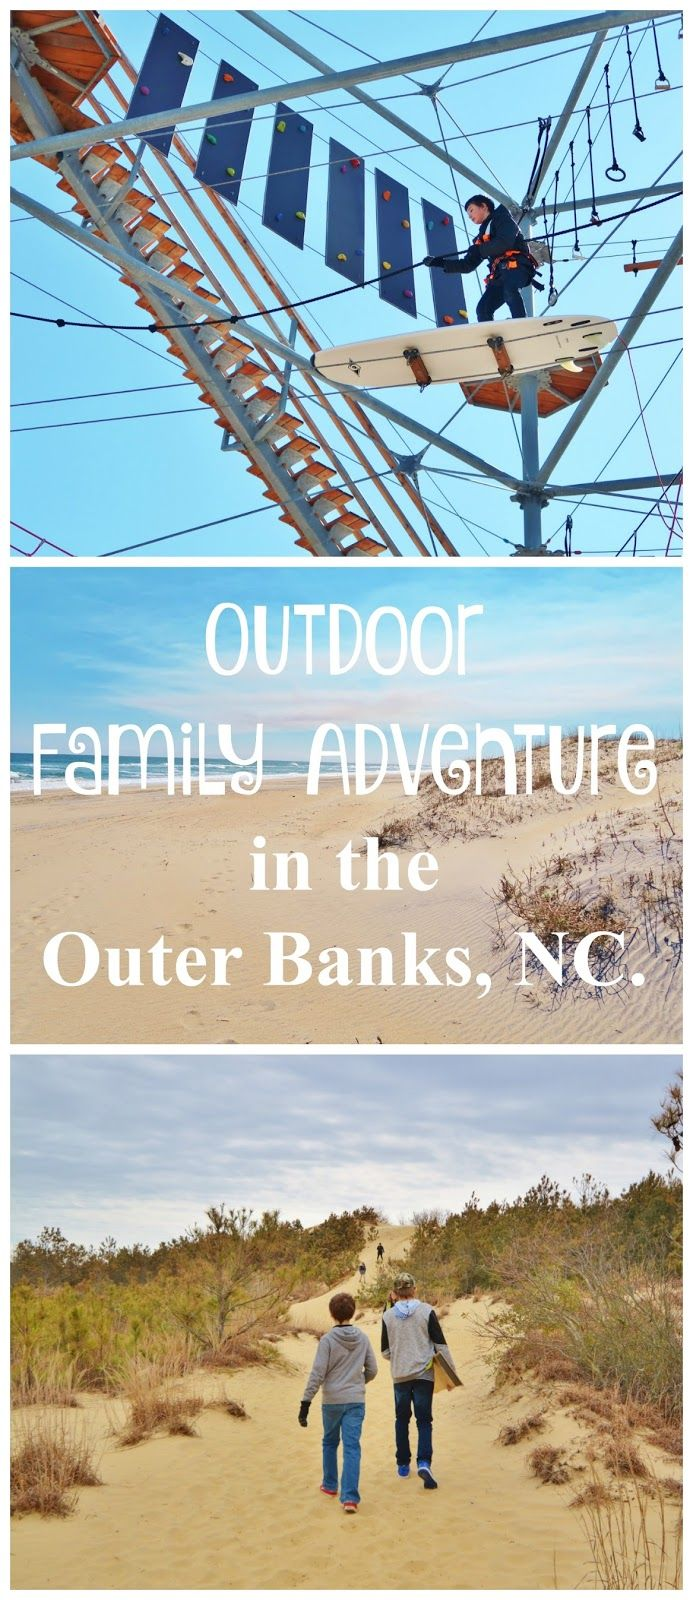 An Outer Banks Vacation Guide for families. Find out what to do, where to stay and what to eat in the Outer Banks Area. #obx #obxnow #ad